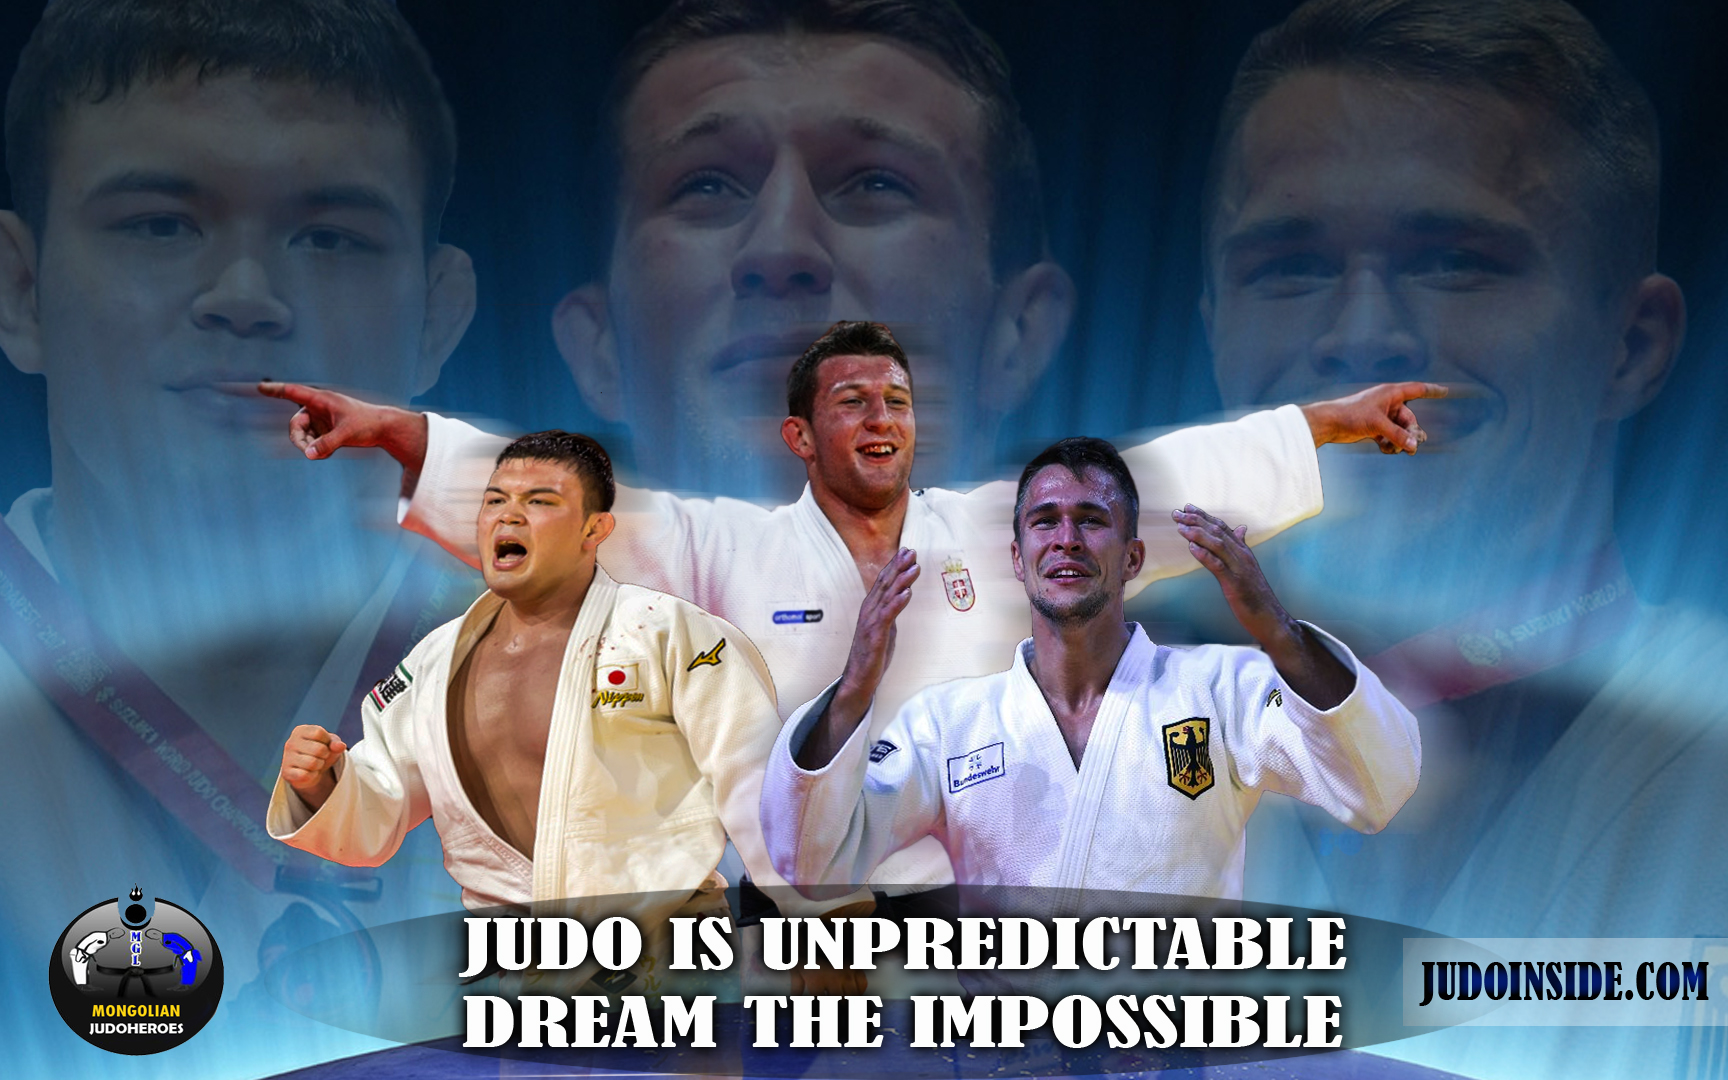 dream_the_impossible